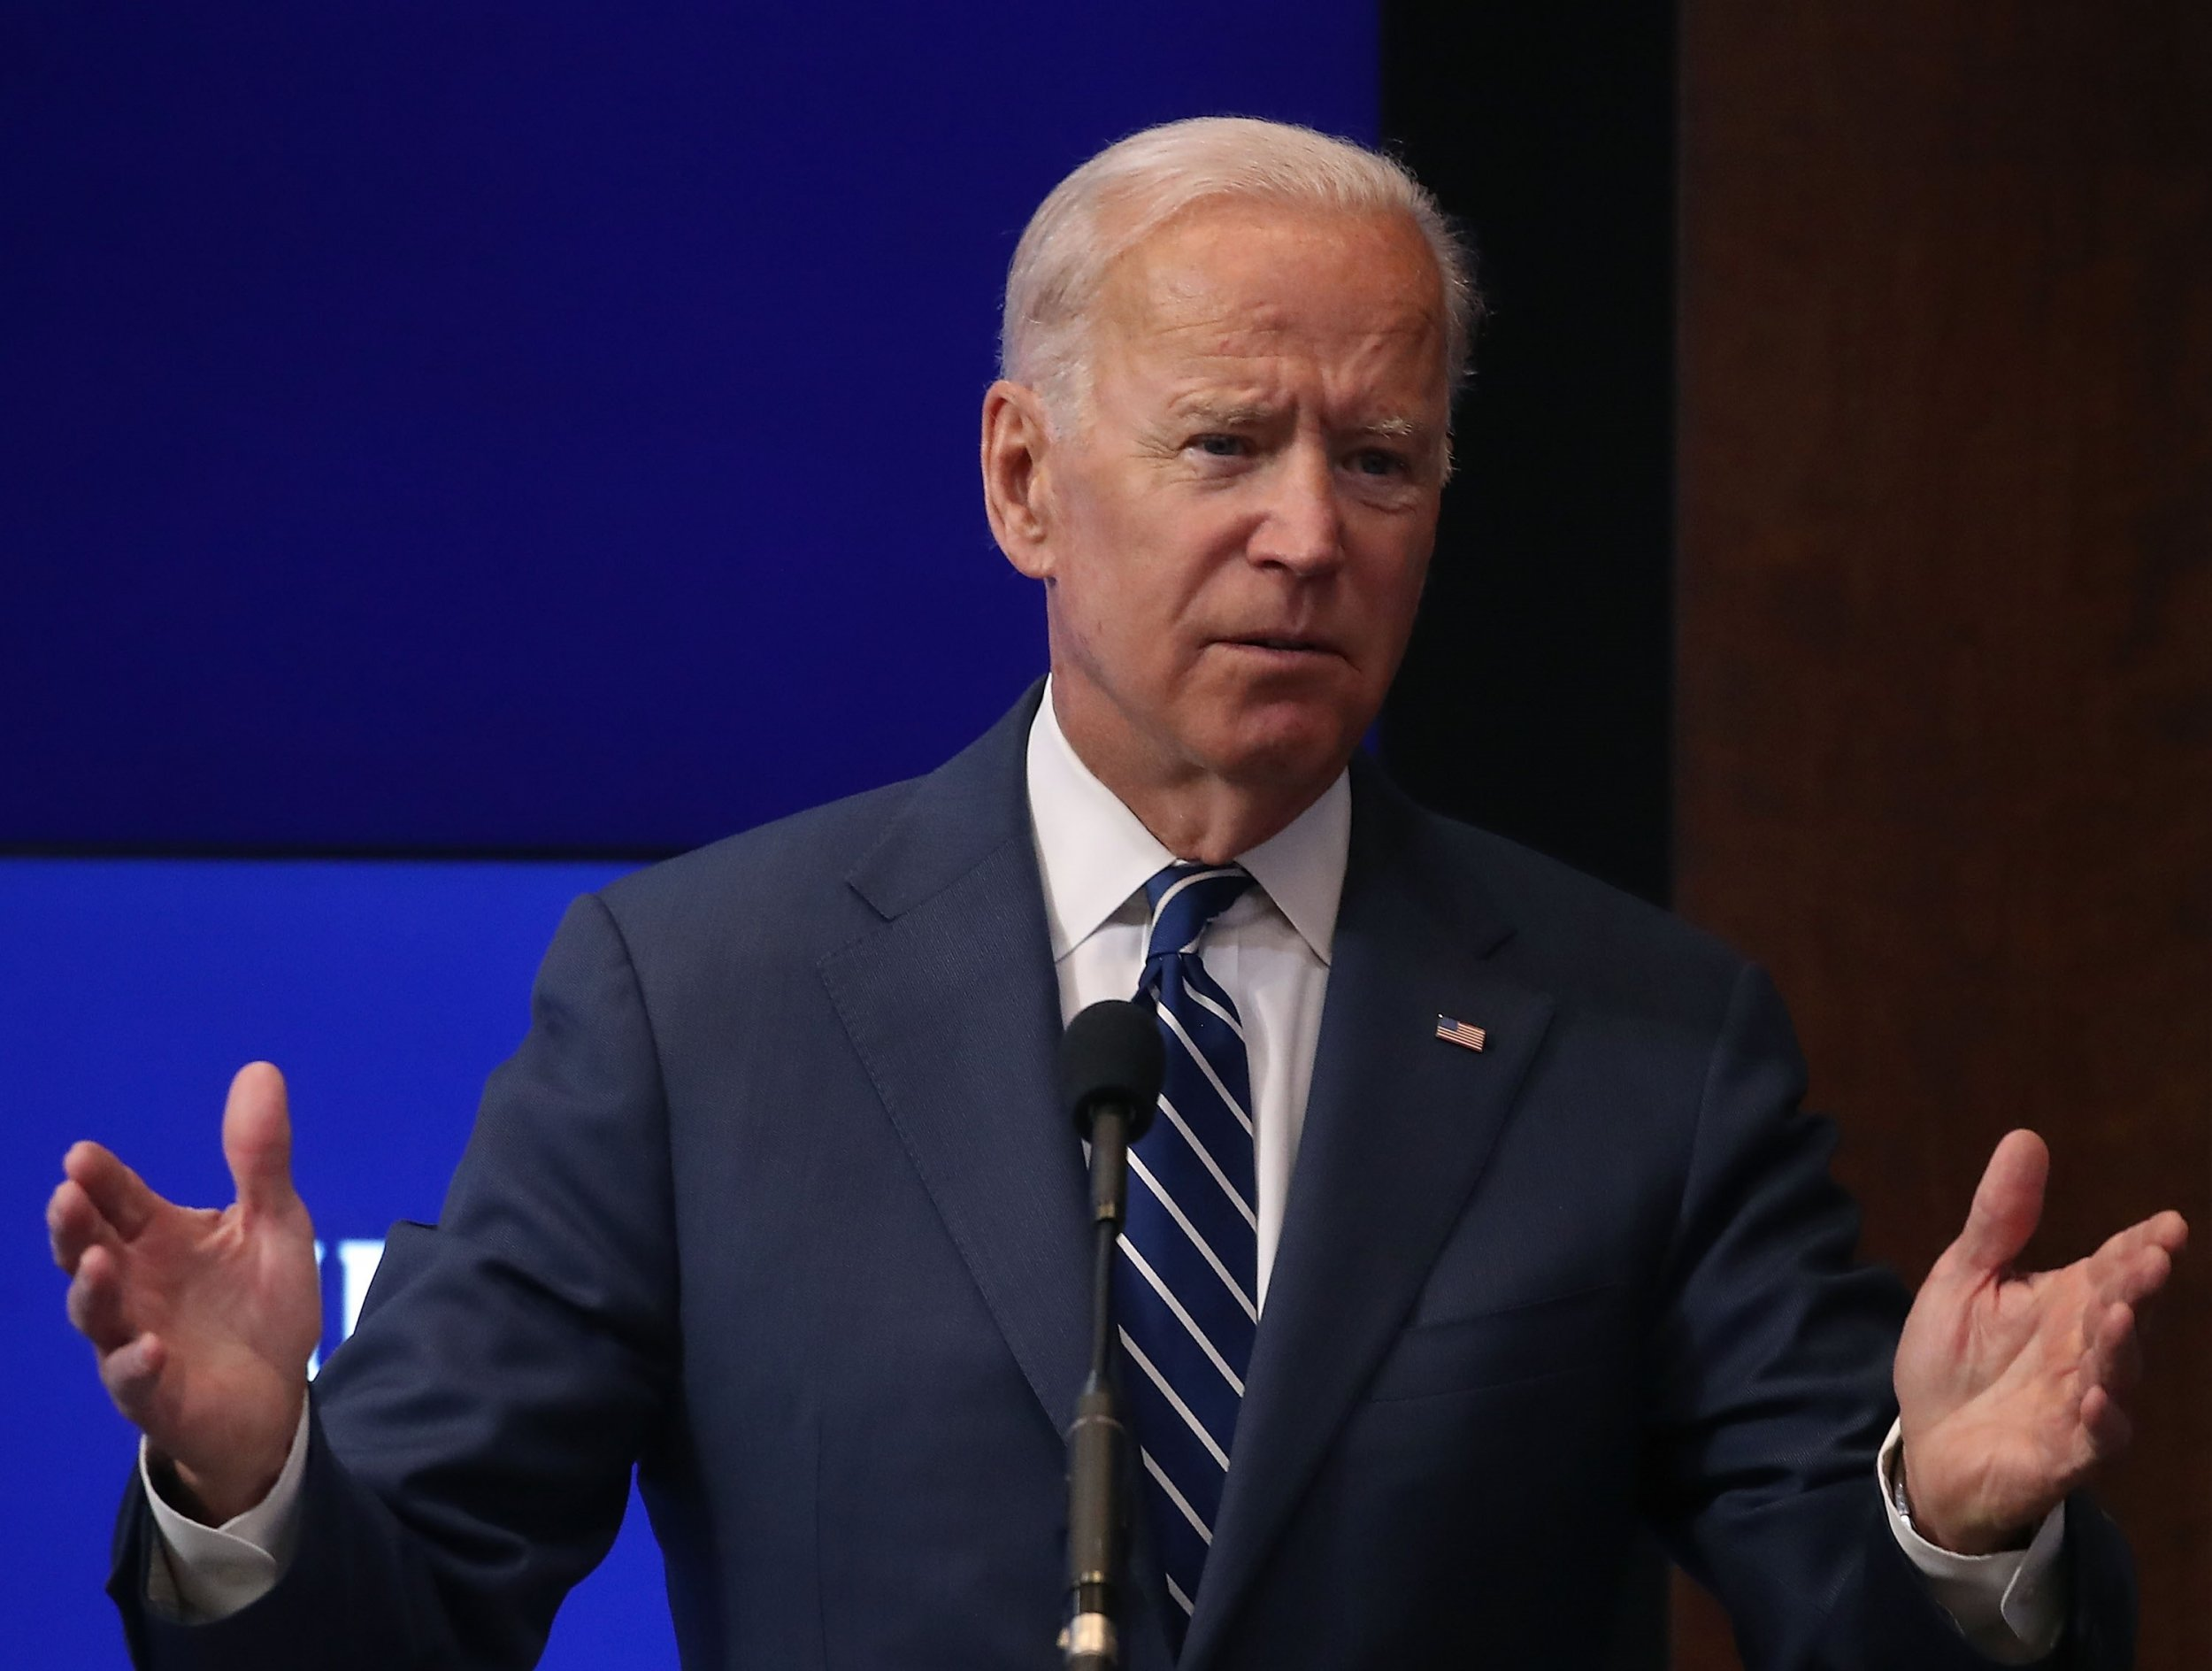 Joe Biden: Democrats Will Win the Senate